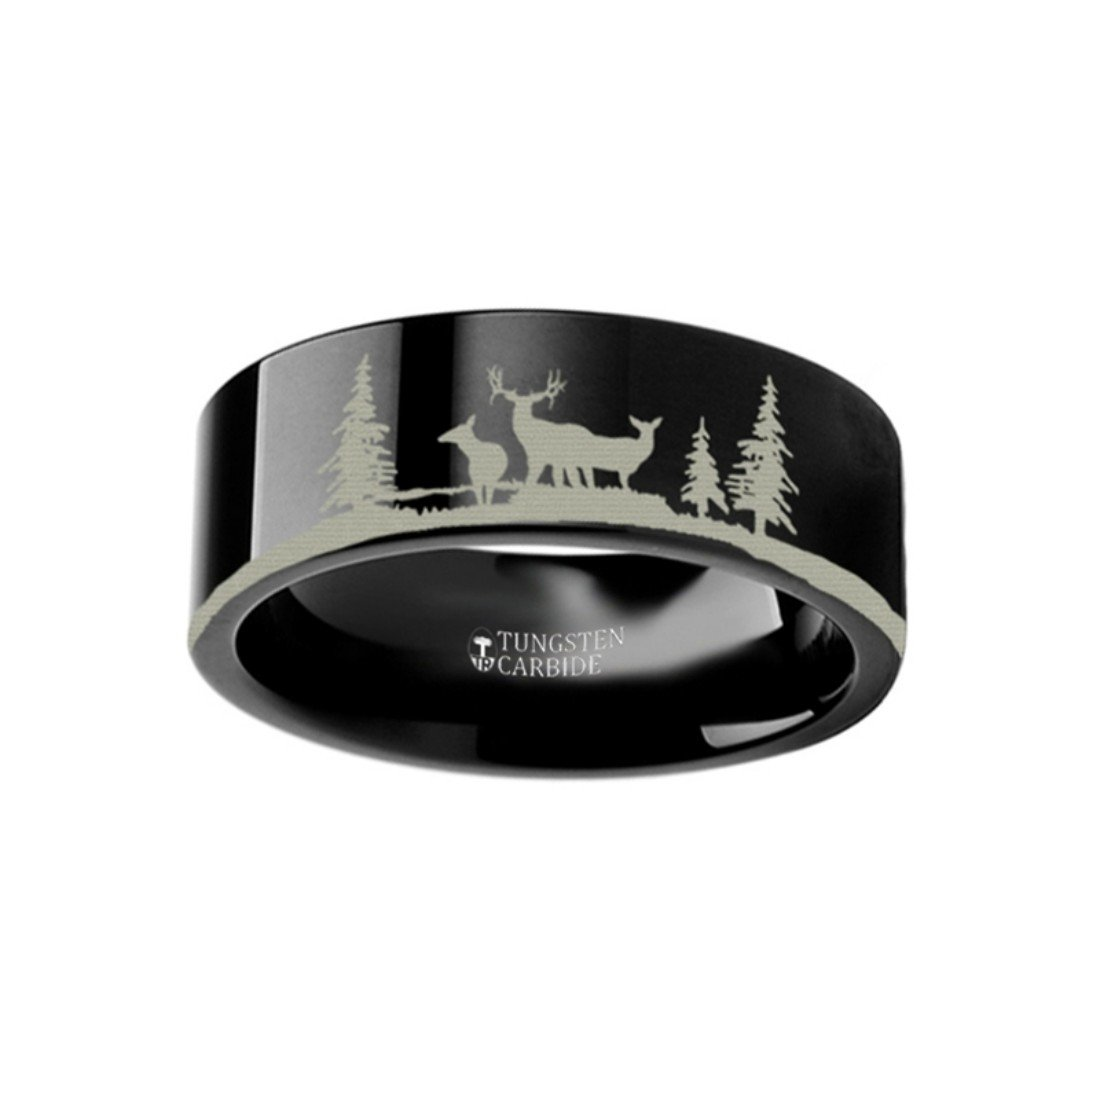 Thorsten Animal Nature Landscape Reindeer Deer Stag Forest Trees Ring Black Tungsten Ring 4mm Wide Wedding Band from Roy Rose Jewelry